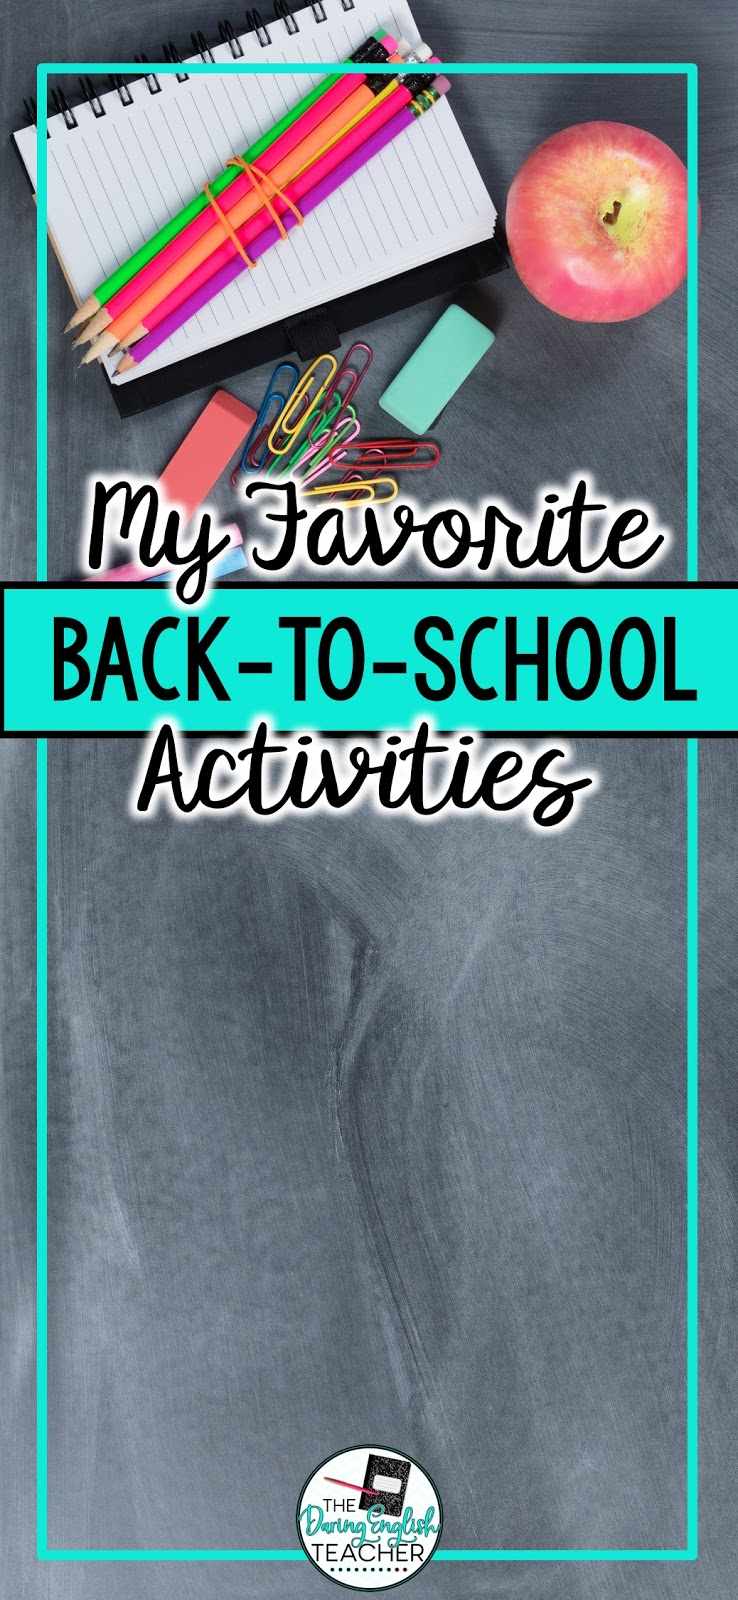 My Favorite Back-to-School Activities | The Daring English